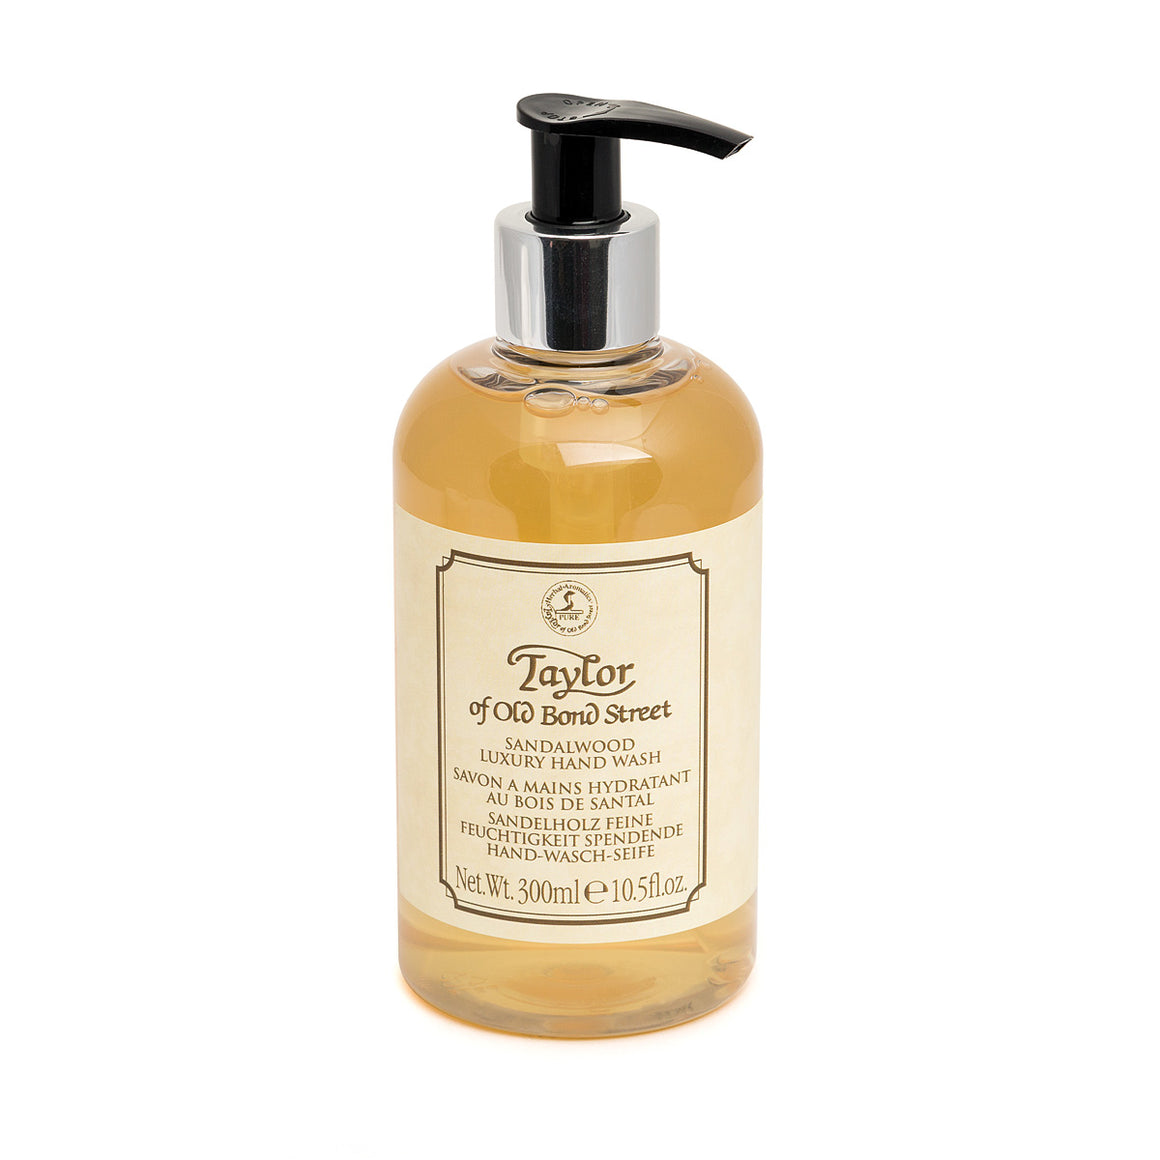 Taylor of Old Bond Street Sandalwood Handwash 300ml